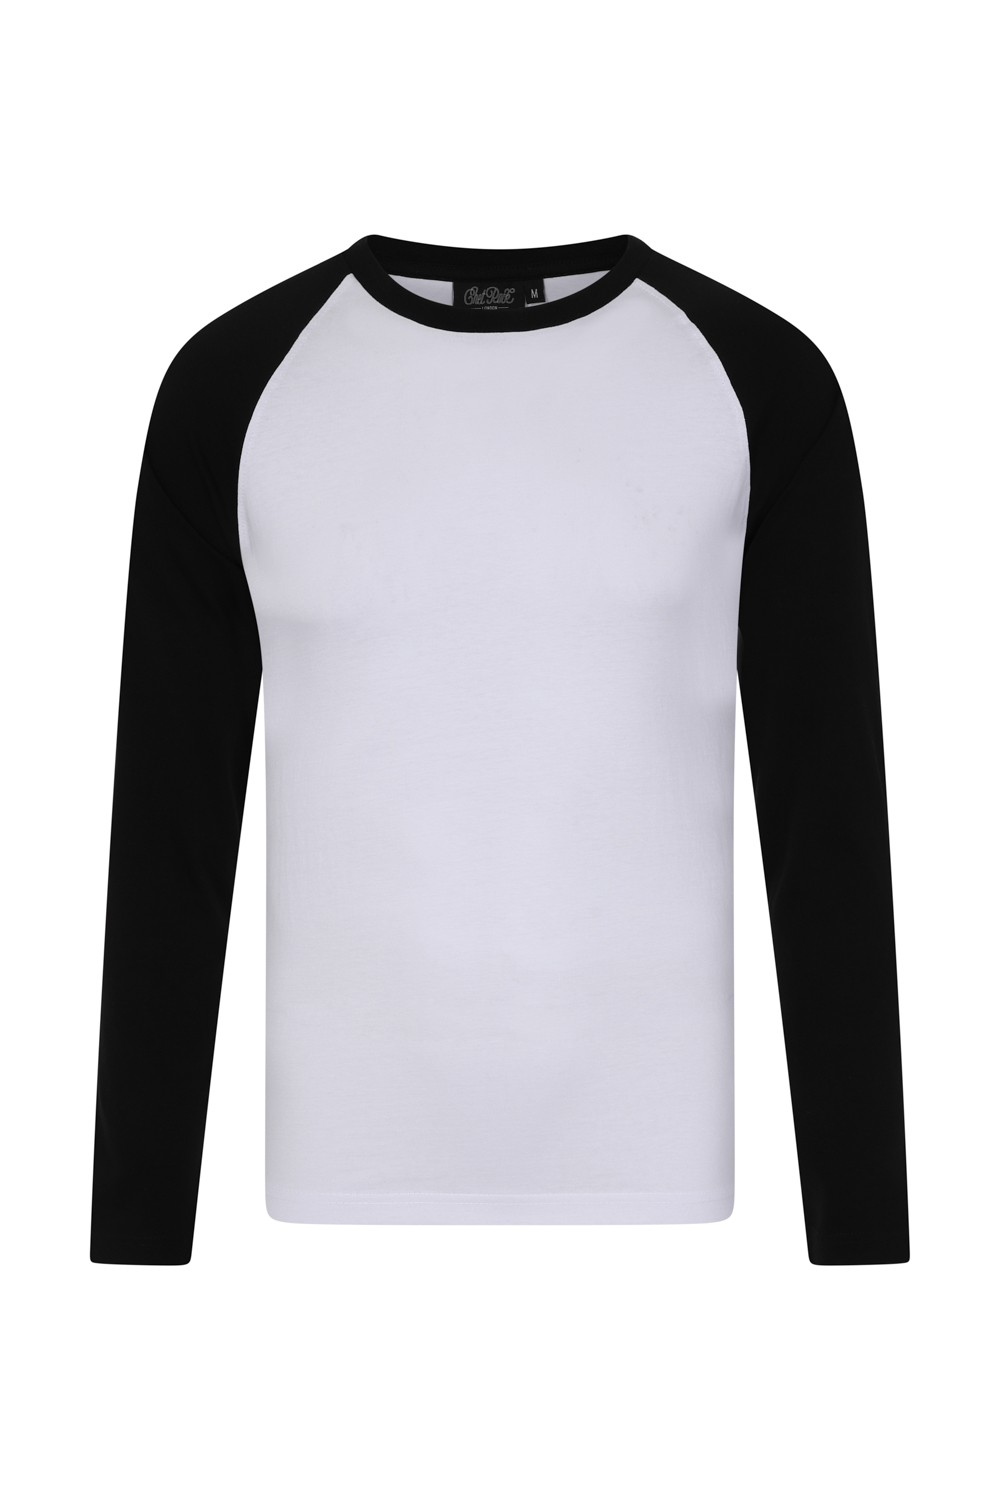 PLAIN LONG SLEEVE TSHIRT